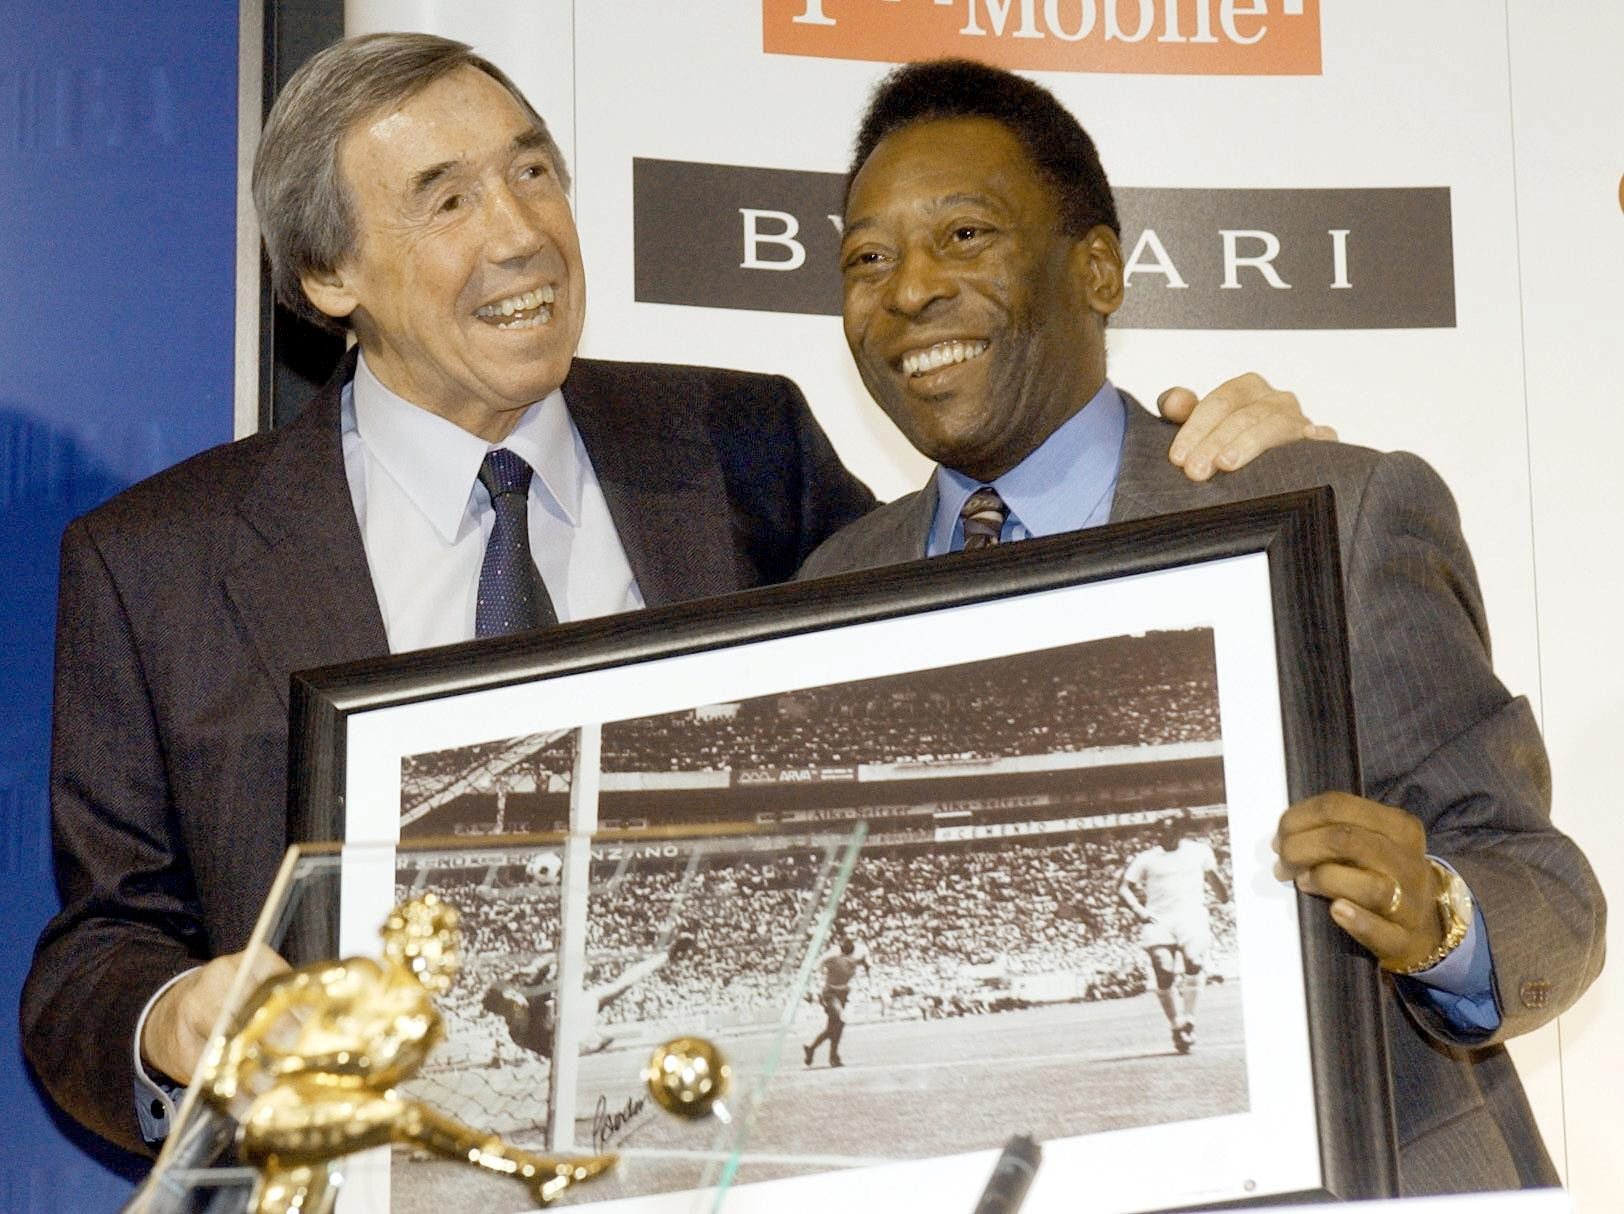 'Why didn't you catch it?' Alan Mullery on that save and memories of Gordon Banks